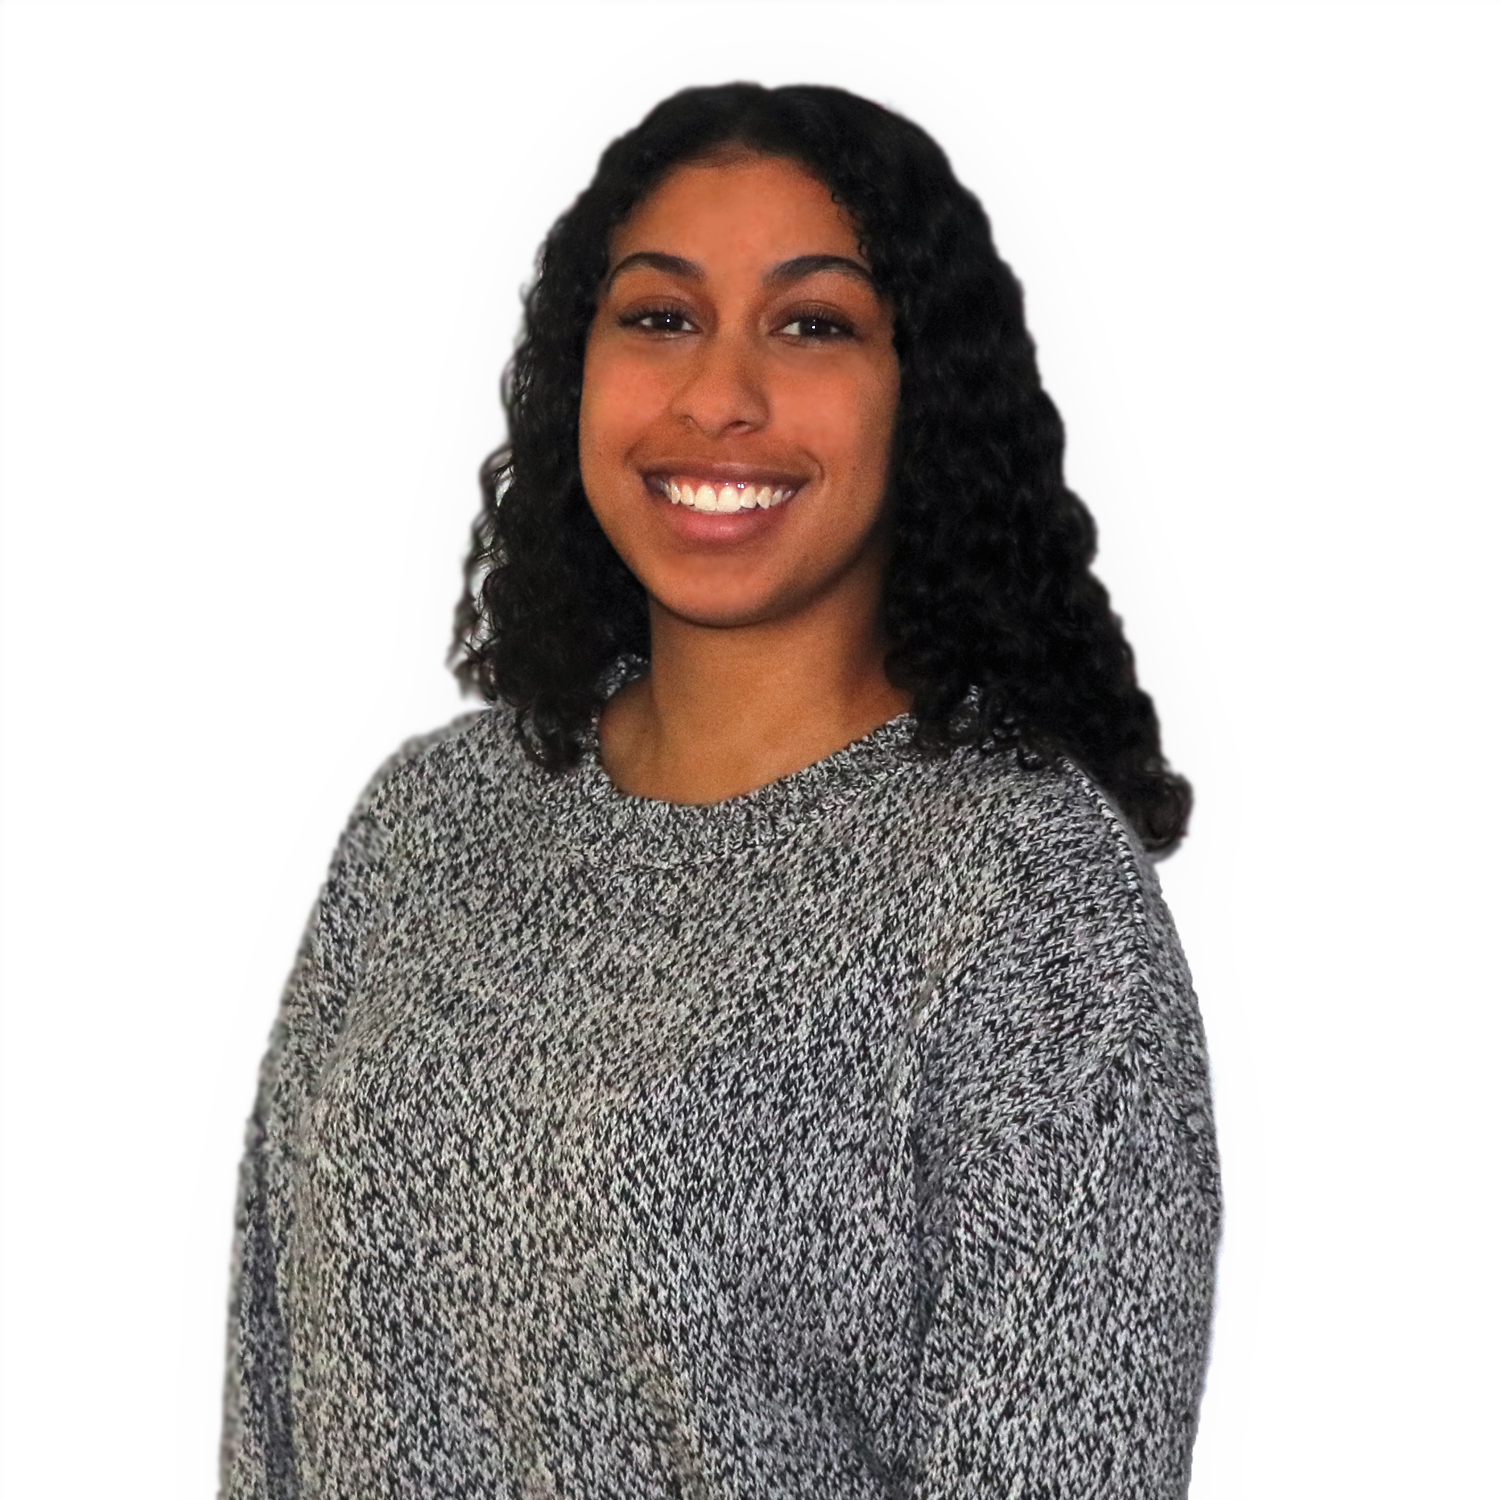 Asianna Williams - Assistant Account Executive